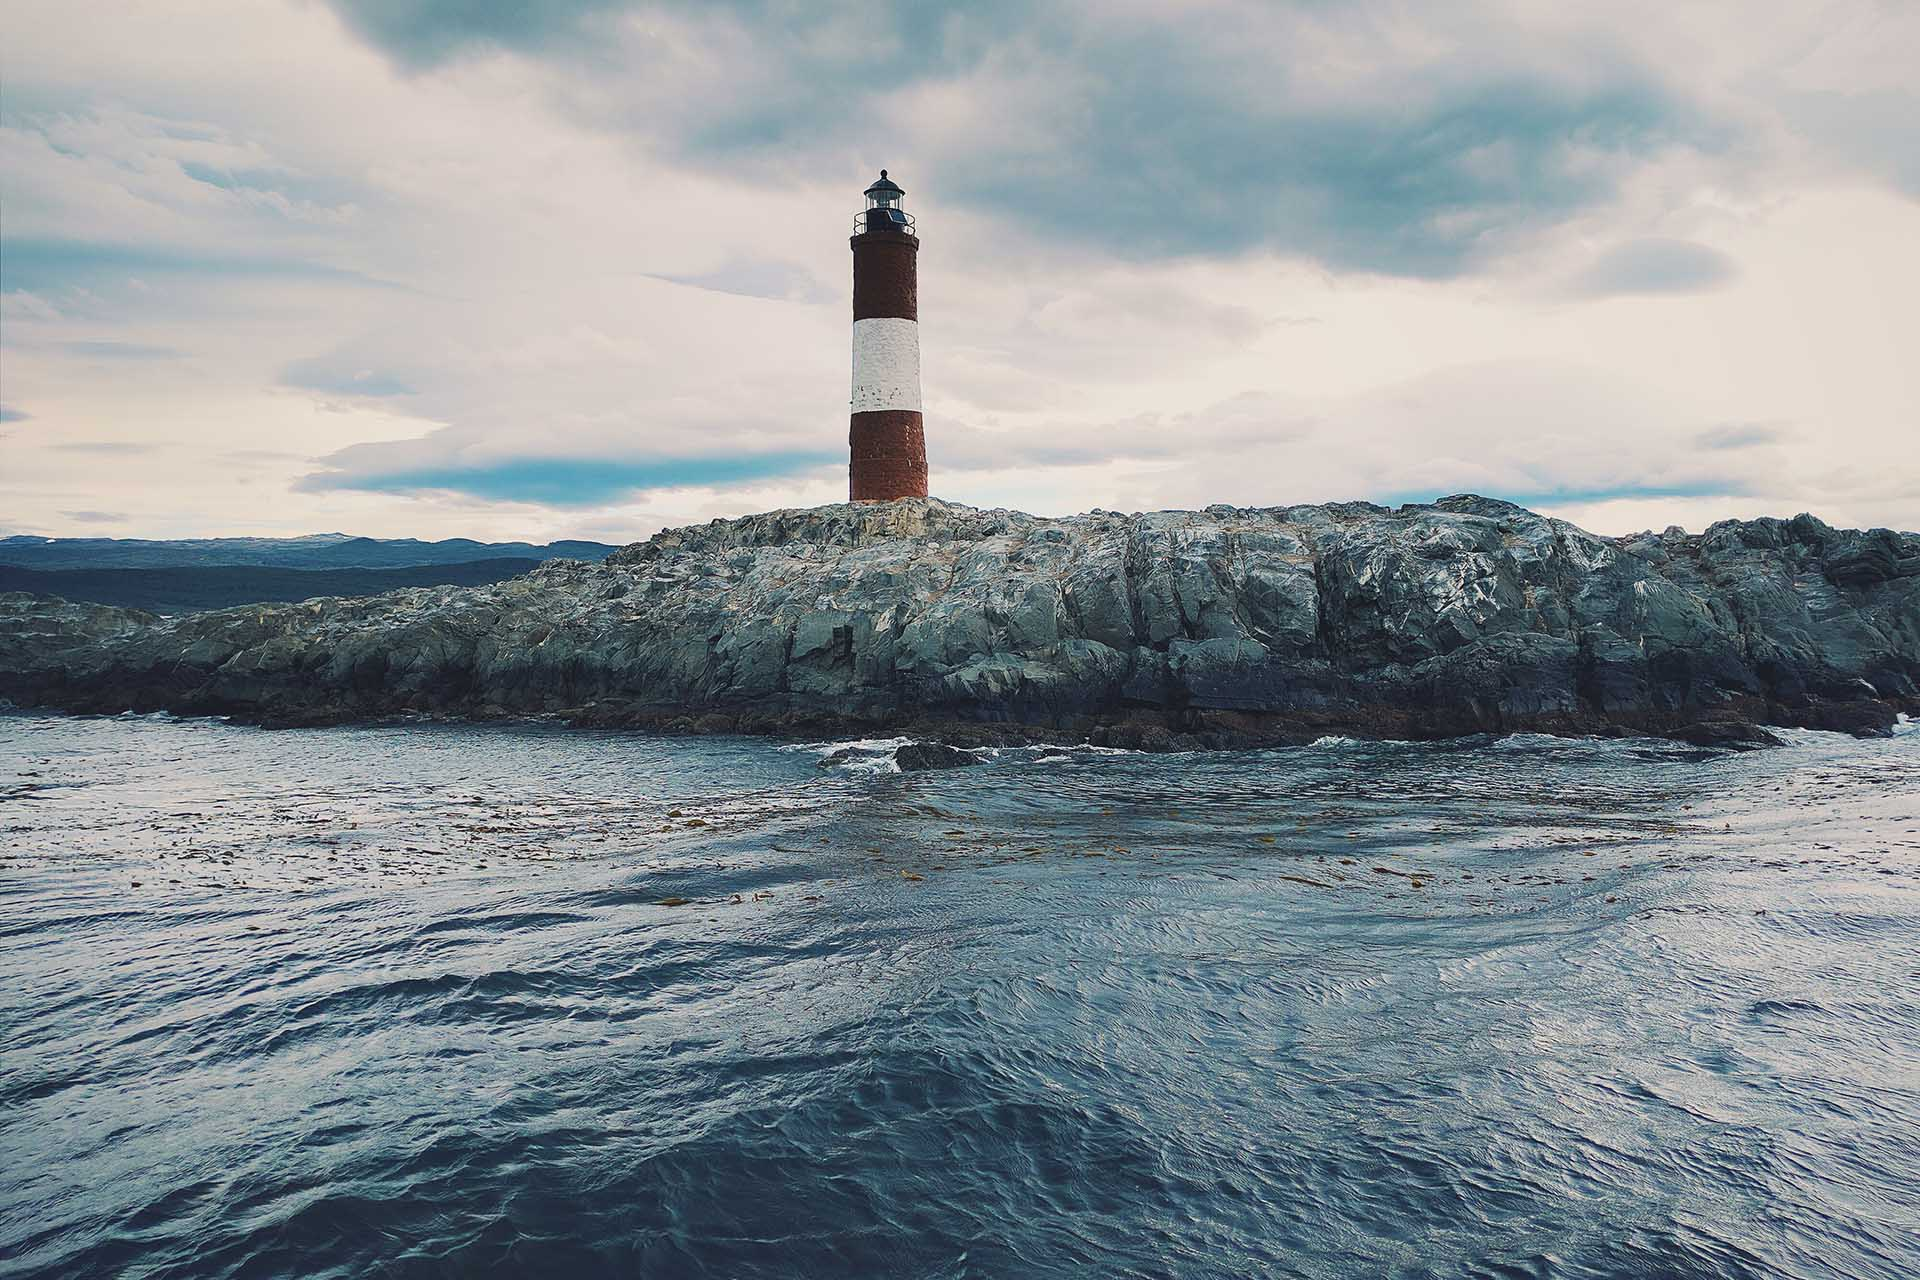 Becoming a lighthouse